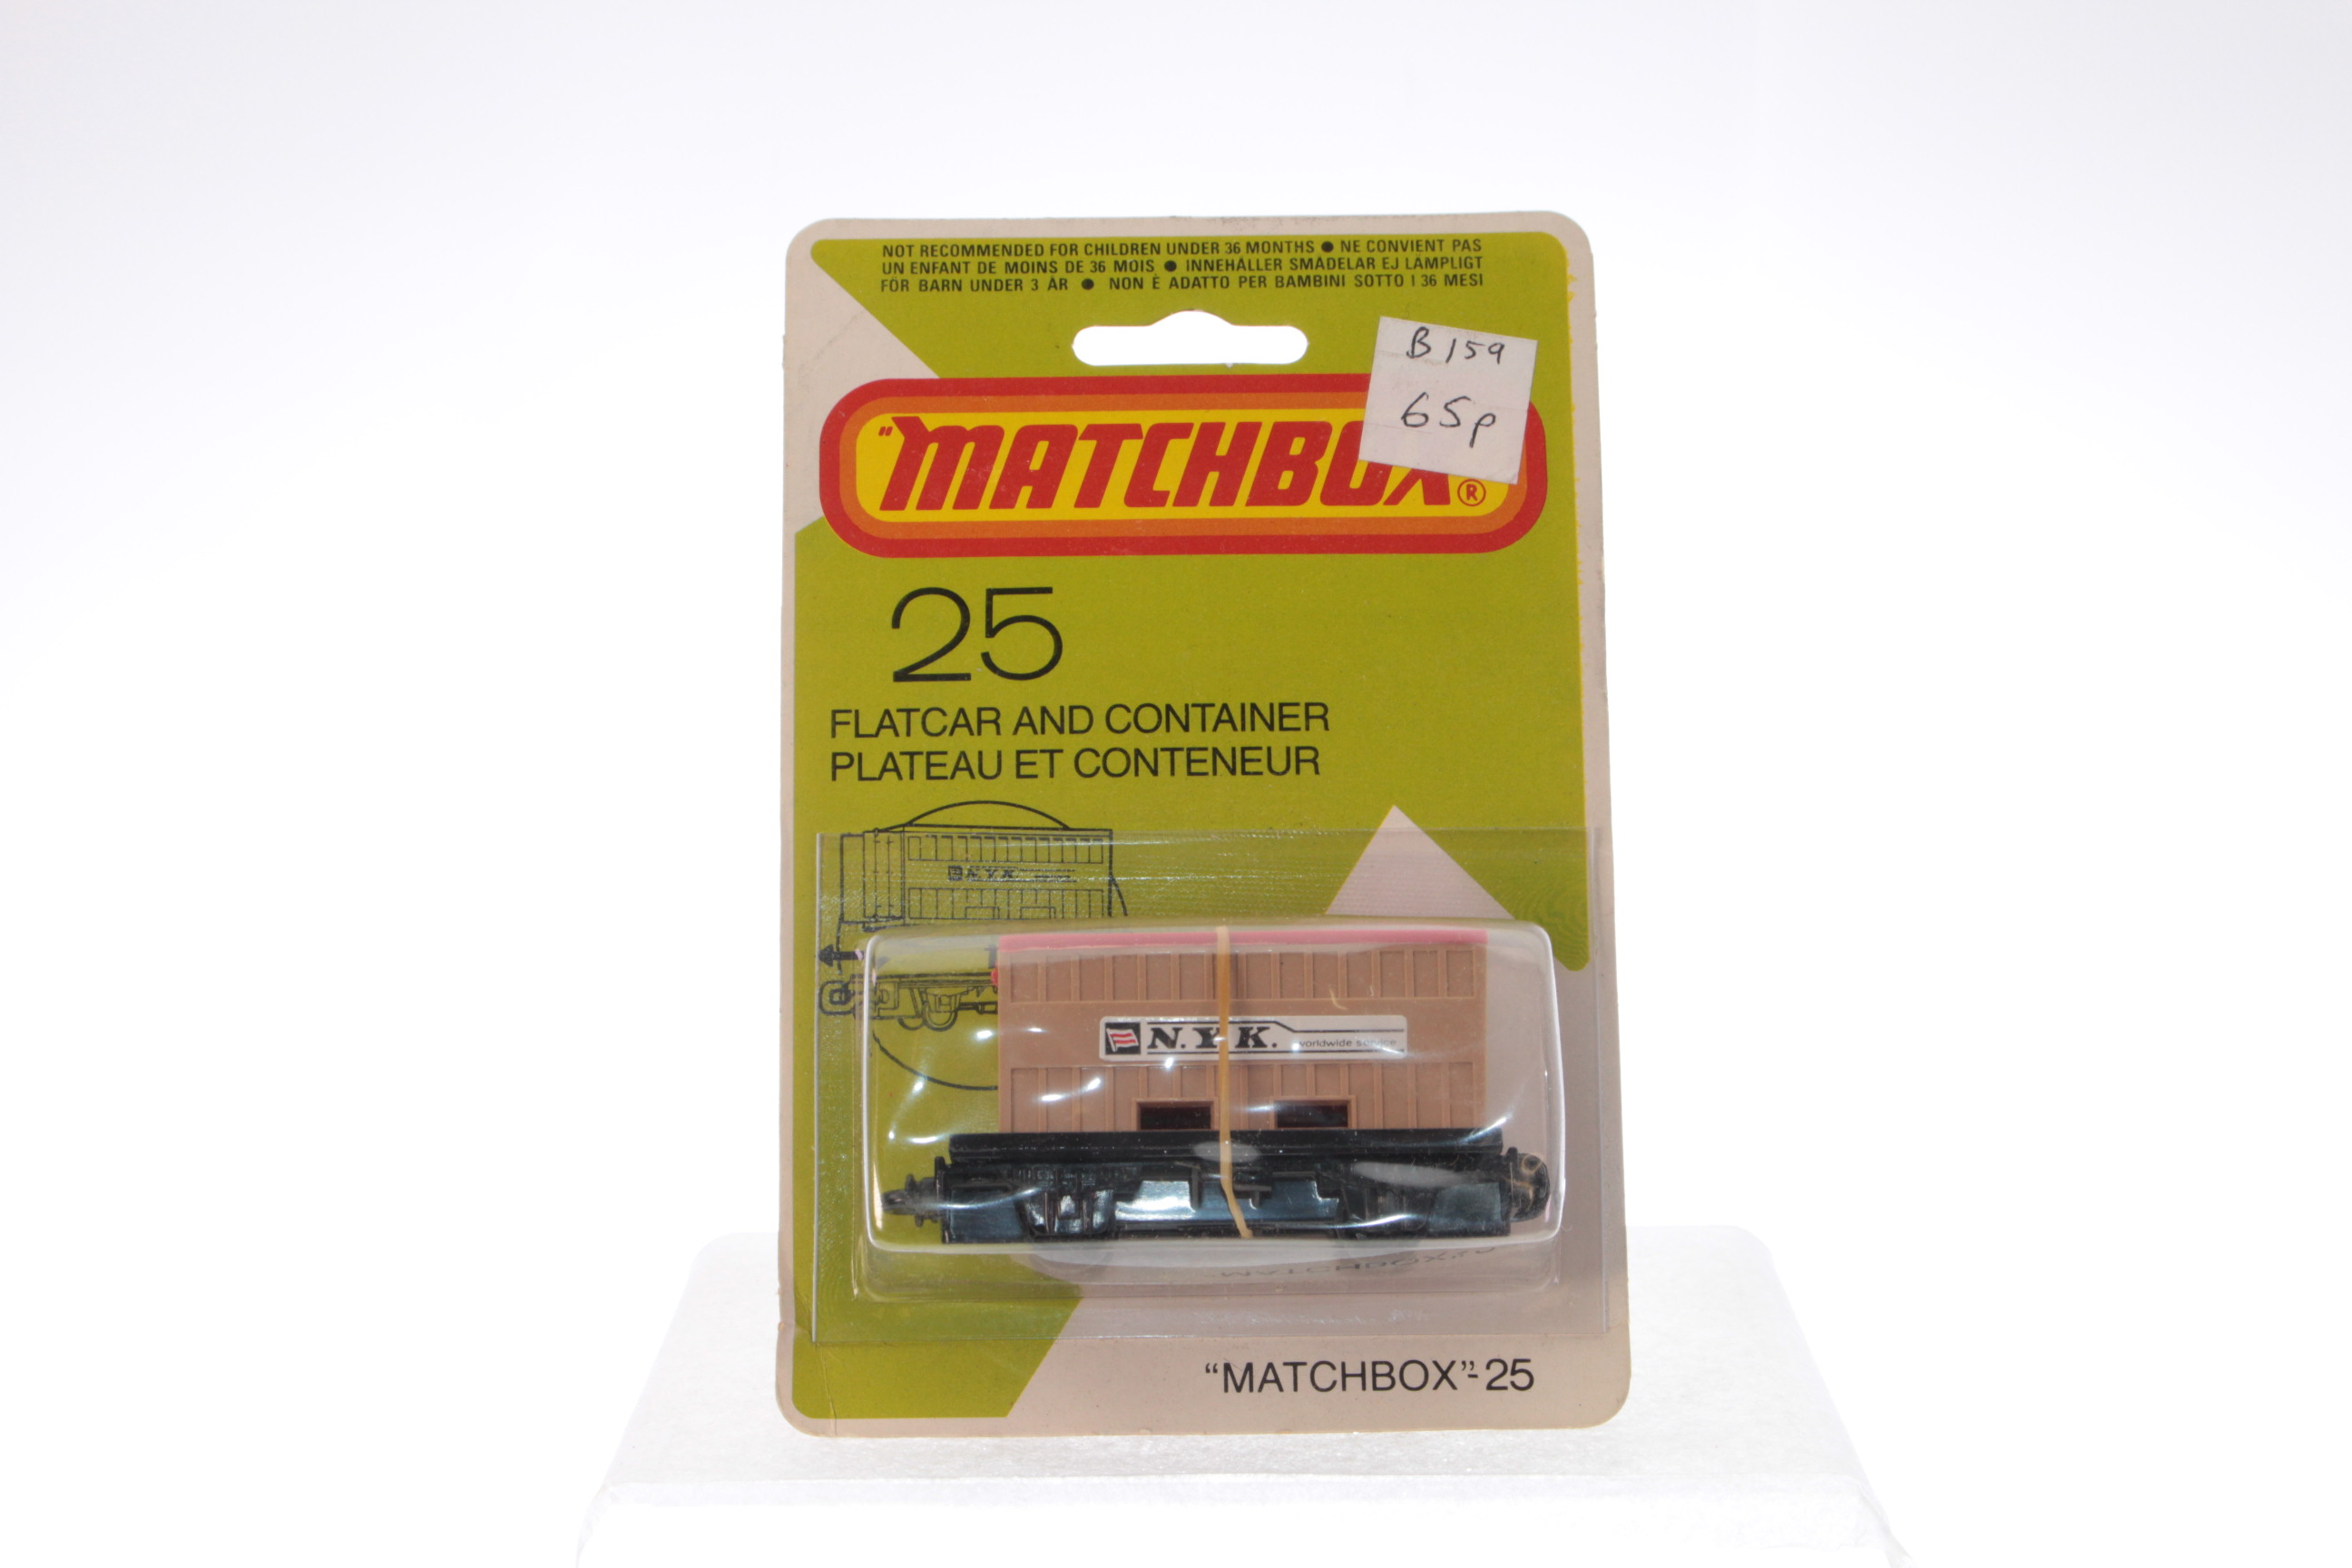 Picture Gallery for Matchbox 25 Flat Car and Container